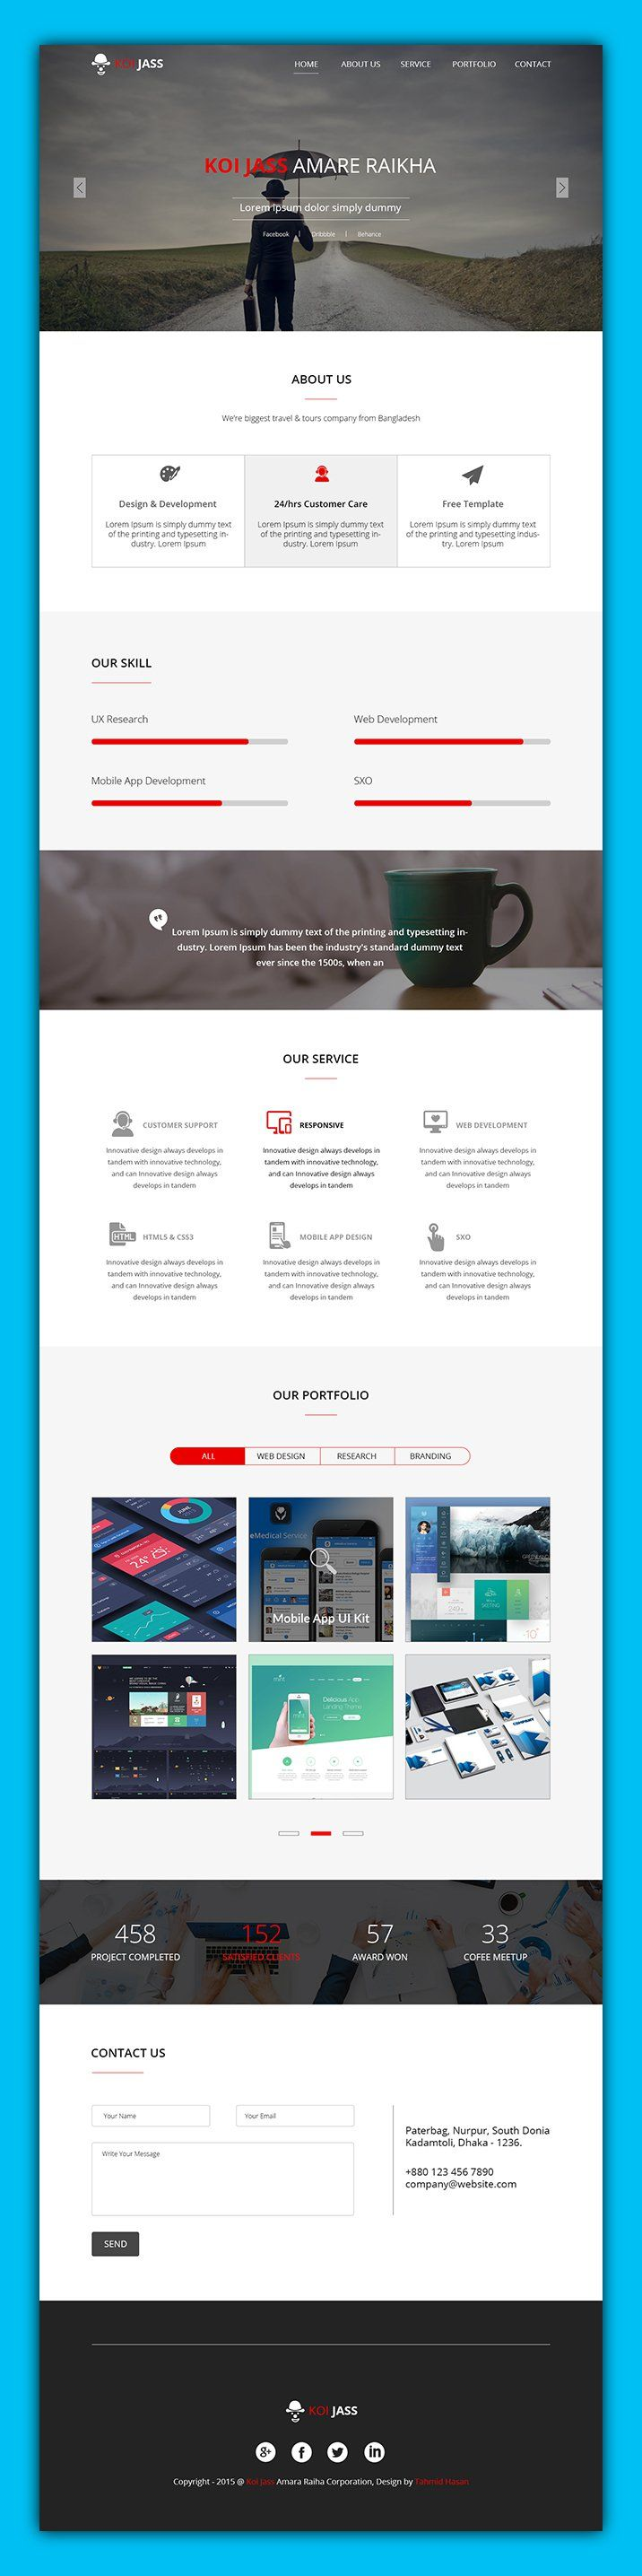 25 unique best free website templates ideas on pinterest best best single page website templates psd free pronofoot35fo Images